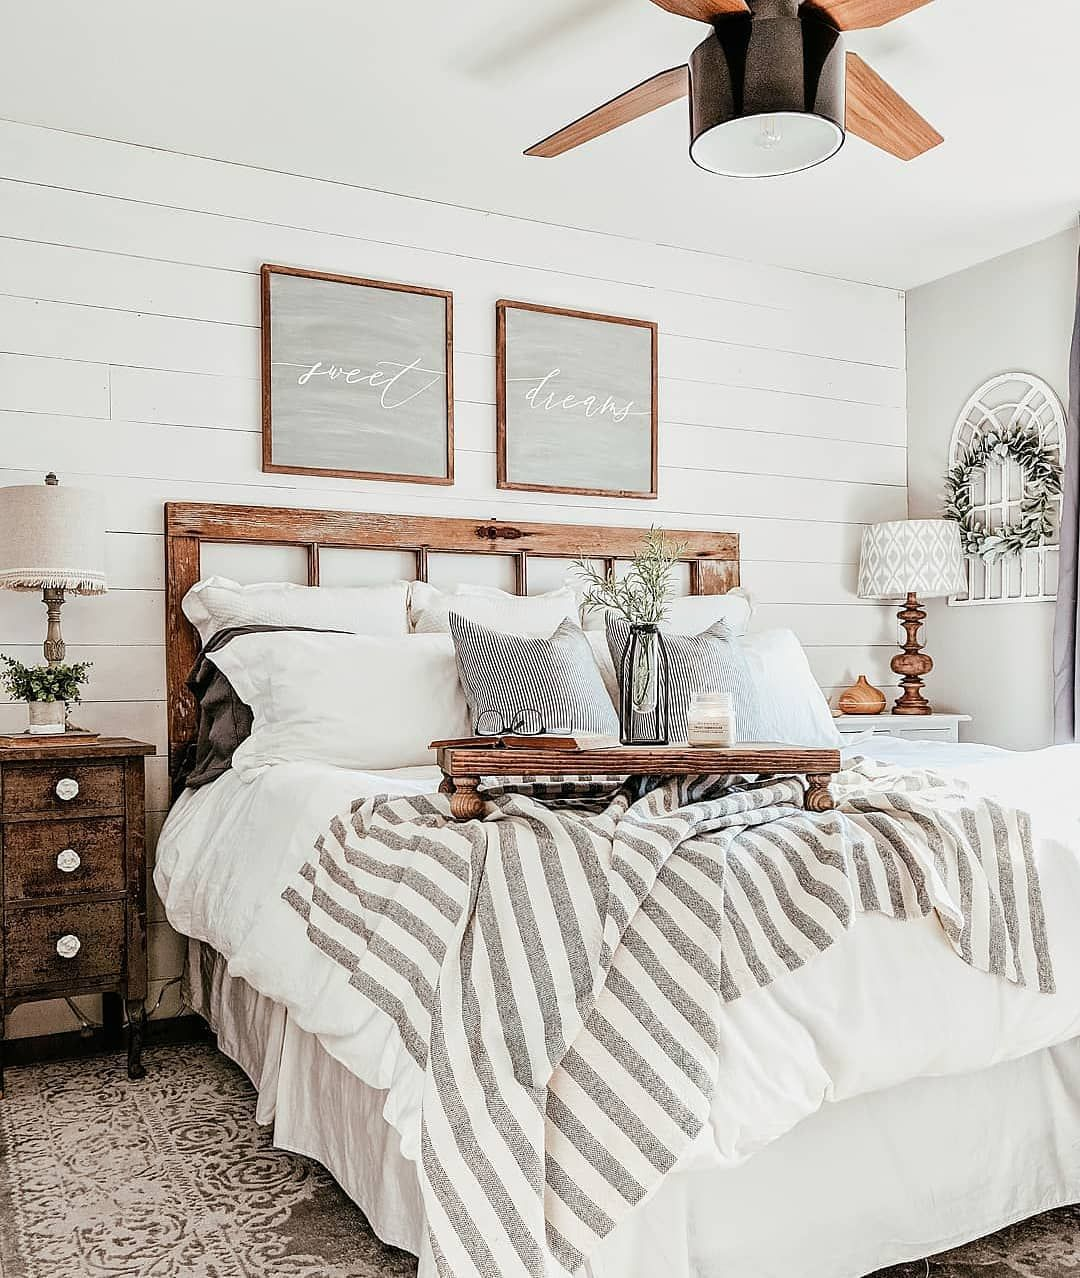 Love Joanna Gaines's style aesthetic? Flip through for homes that have that same modern farmhouse vibe, and offer a lot of inspiration.